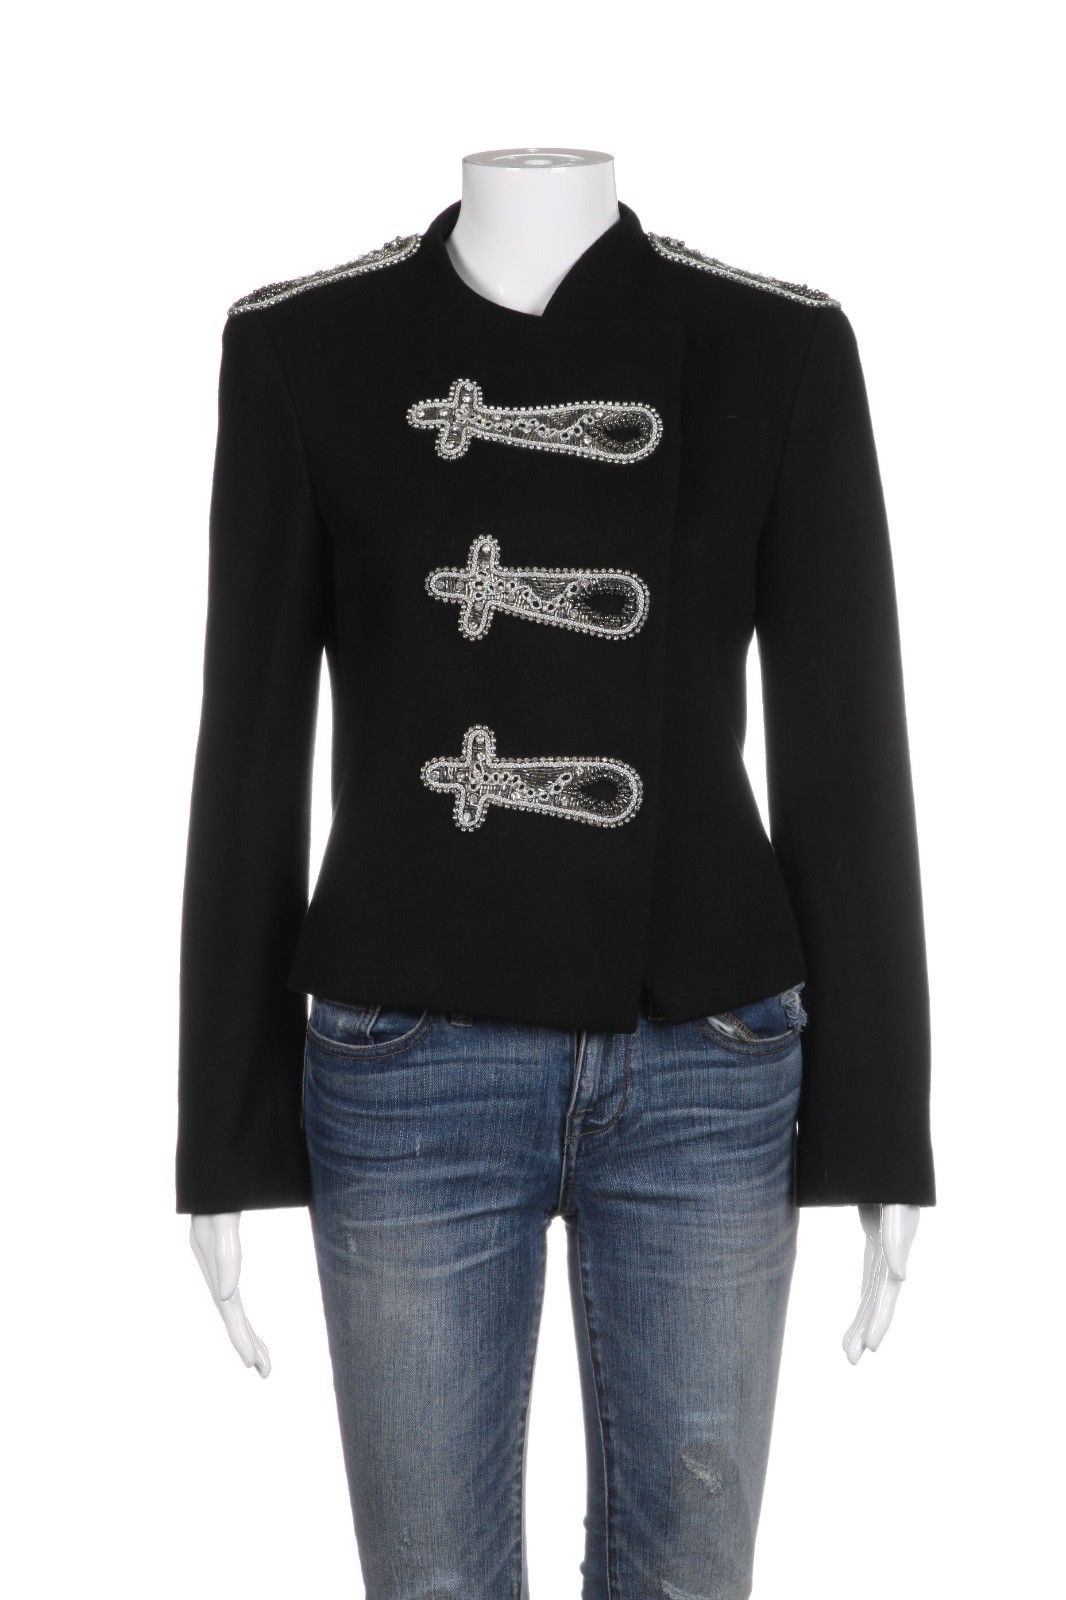 ALICE + OLIVIA Black Wool Blend Bead Embellished Military Jacket Size S